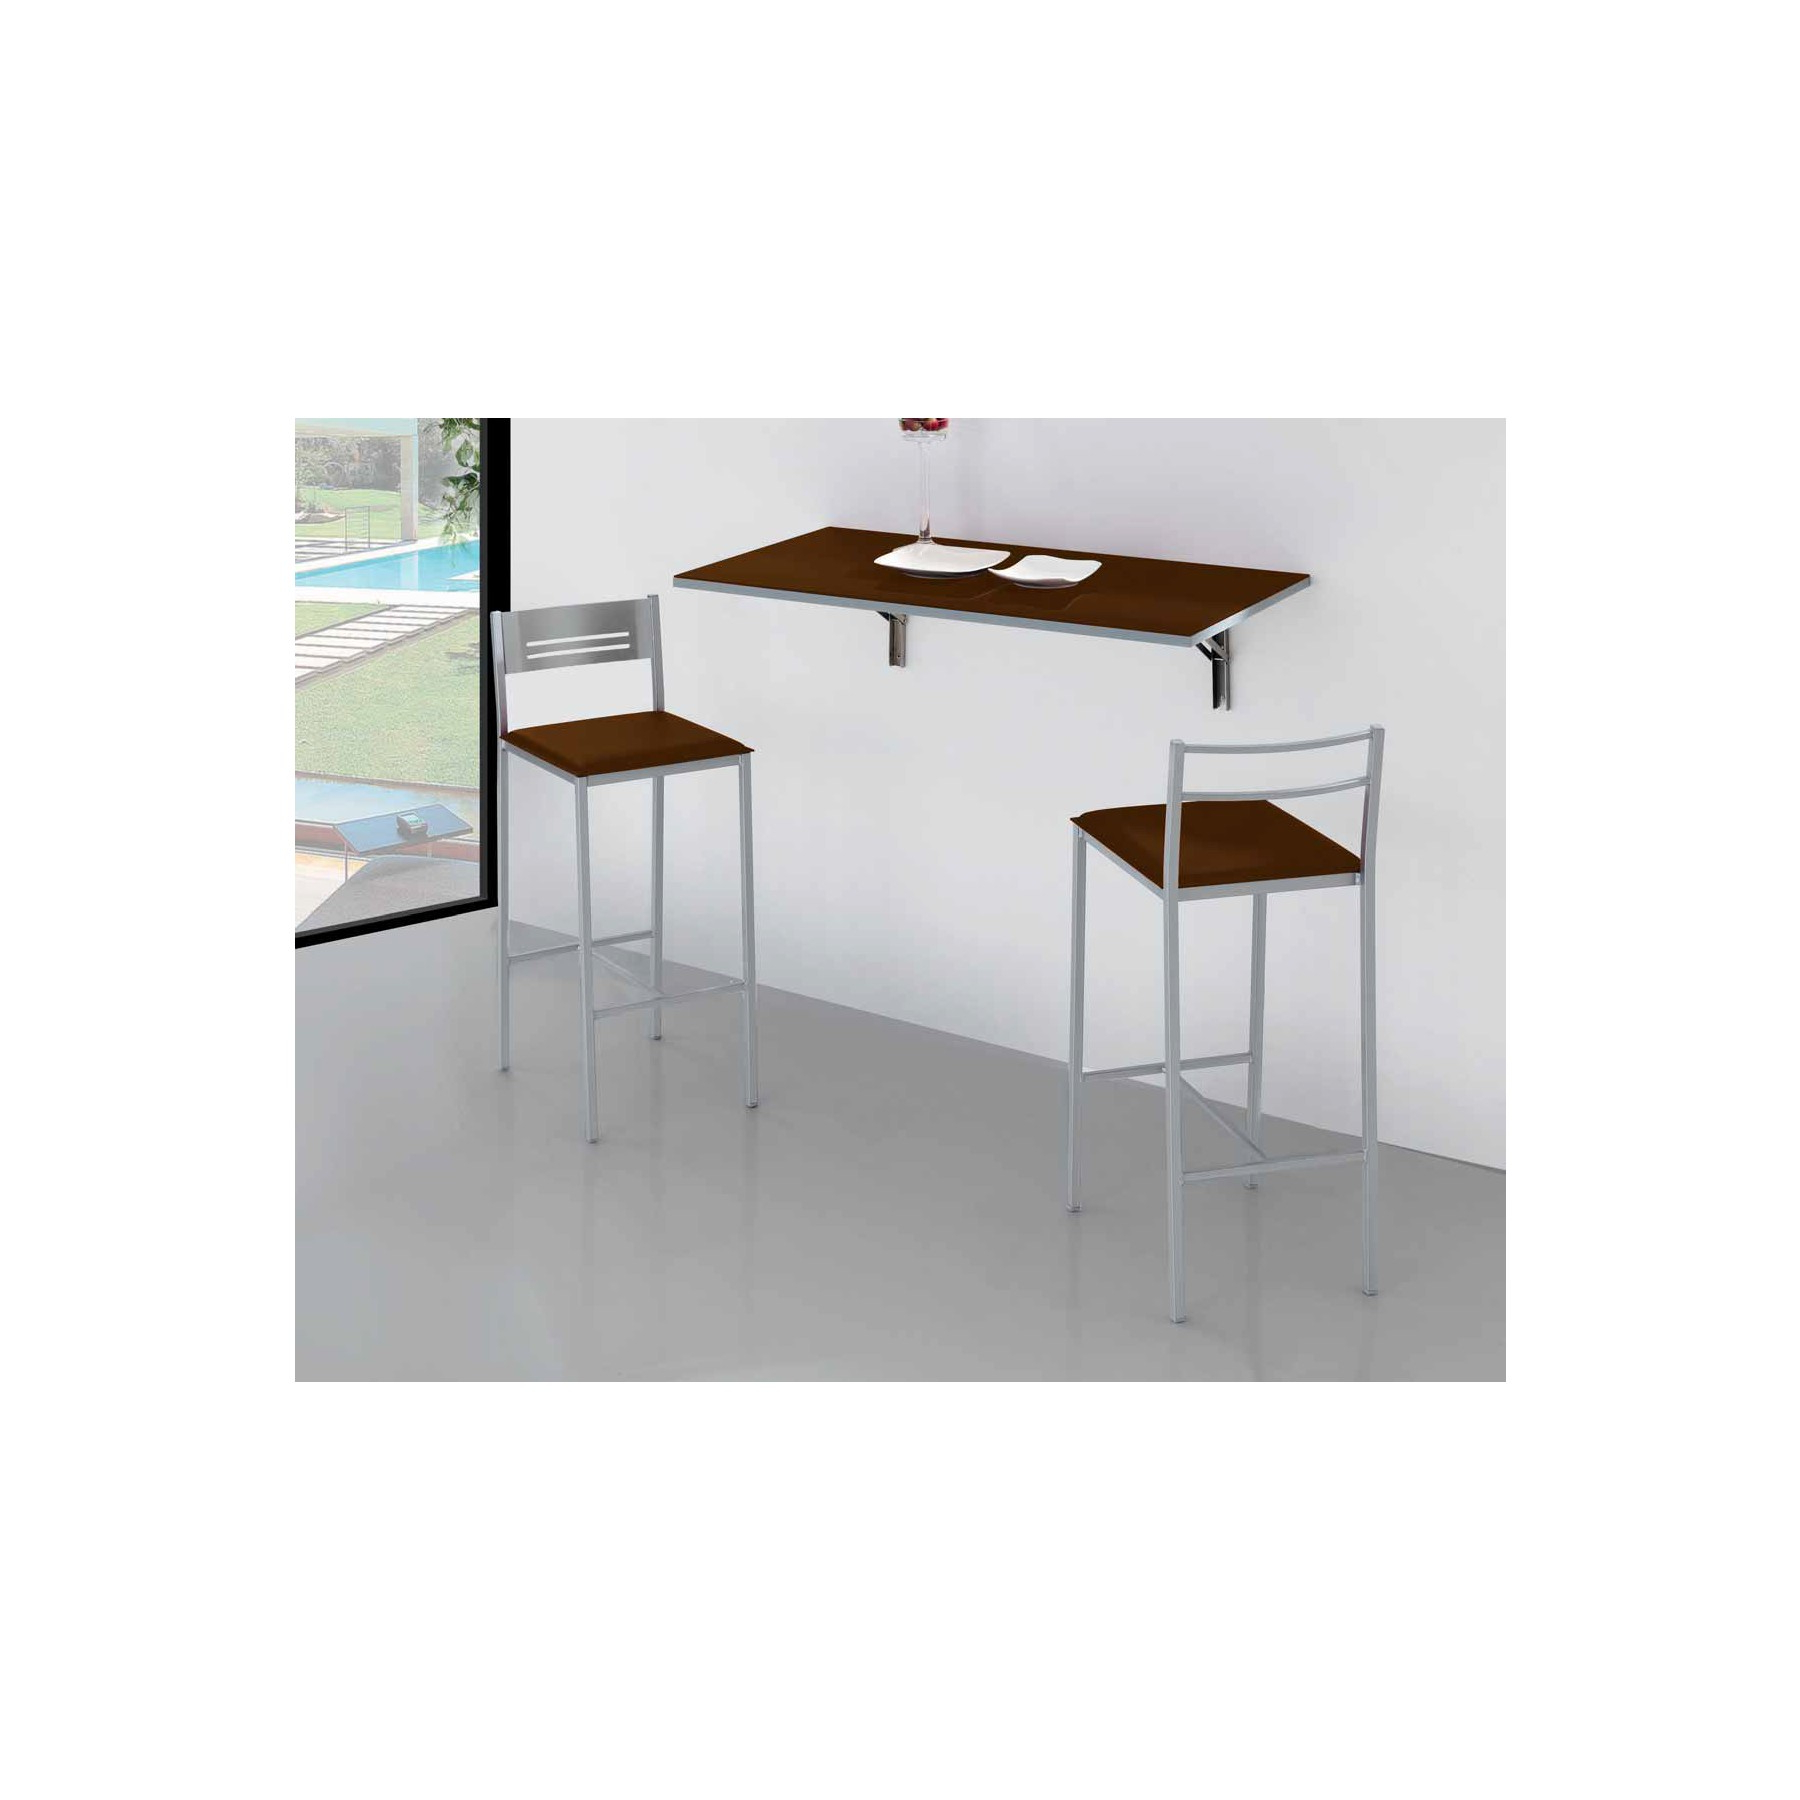 Mesa Plegable Pared Cocina Ffdn Mesa De Cocina De Pared Plegable Simple Dkg